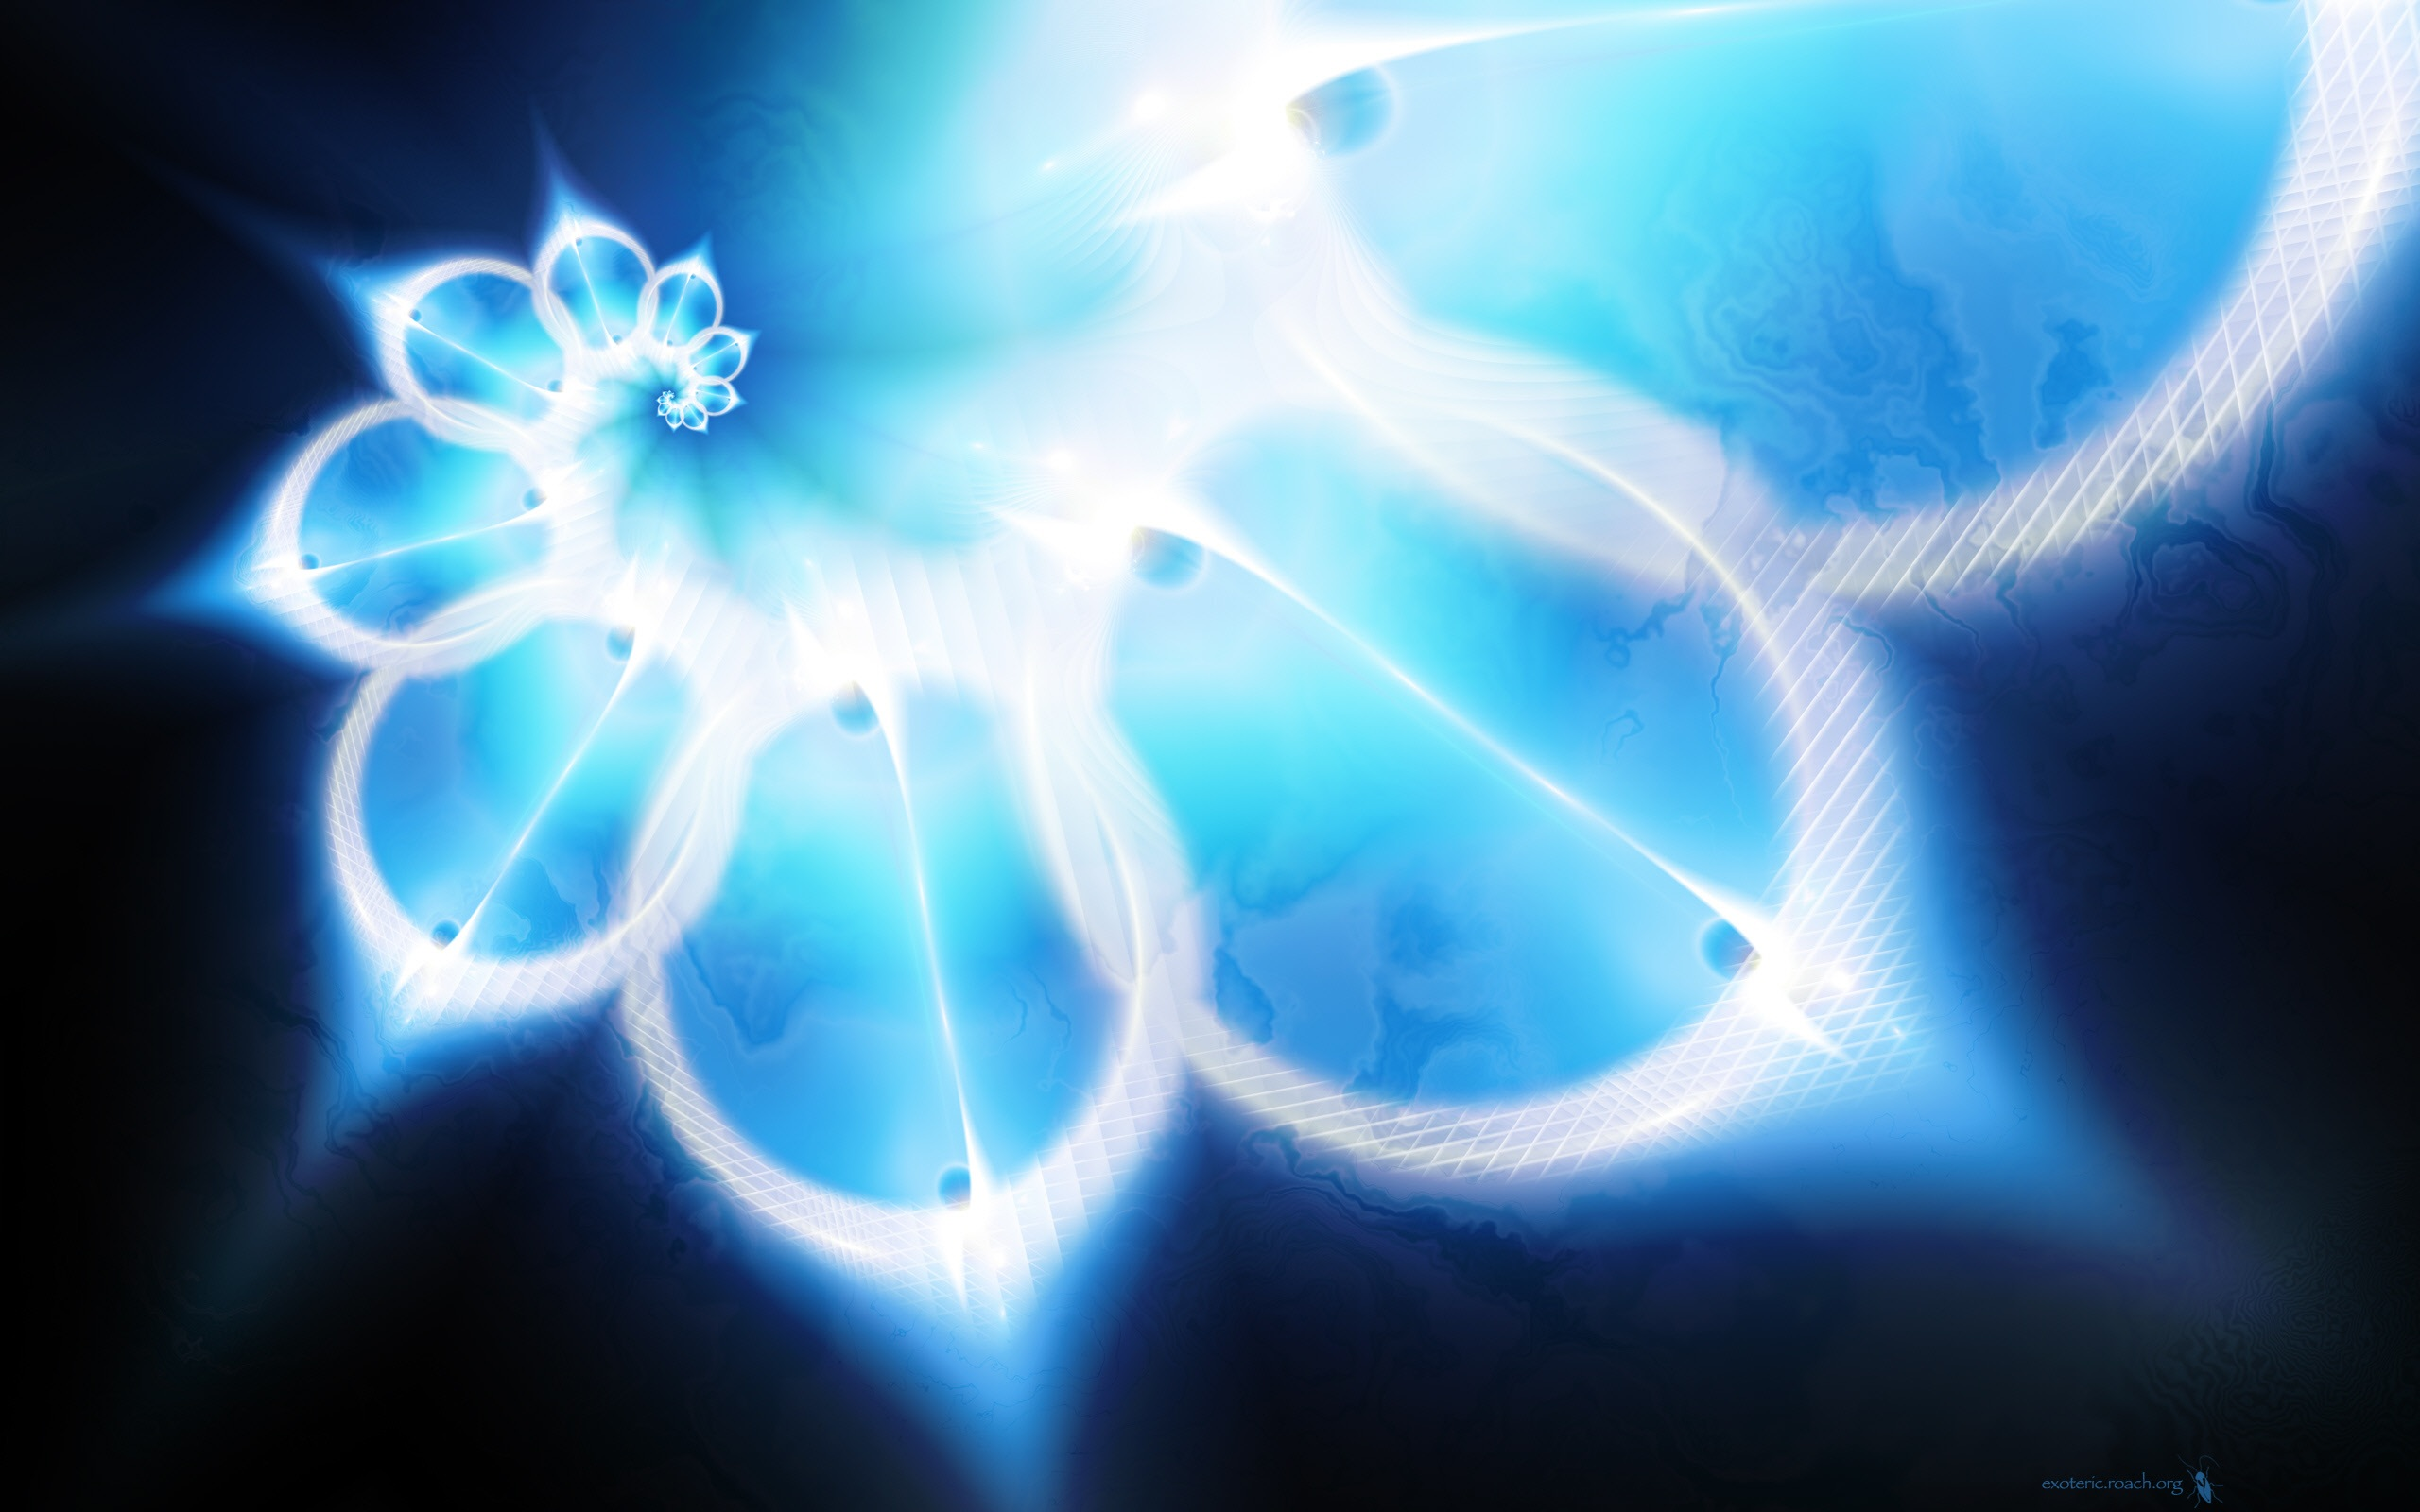 Wallpaper Blue Design Drawing 2560x1600 Hd Picture Image